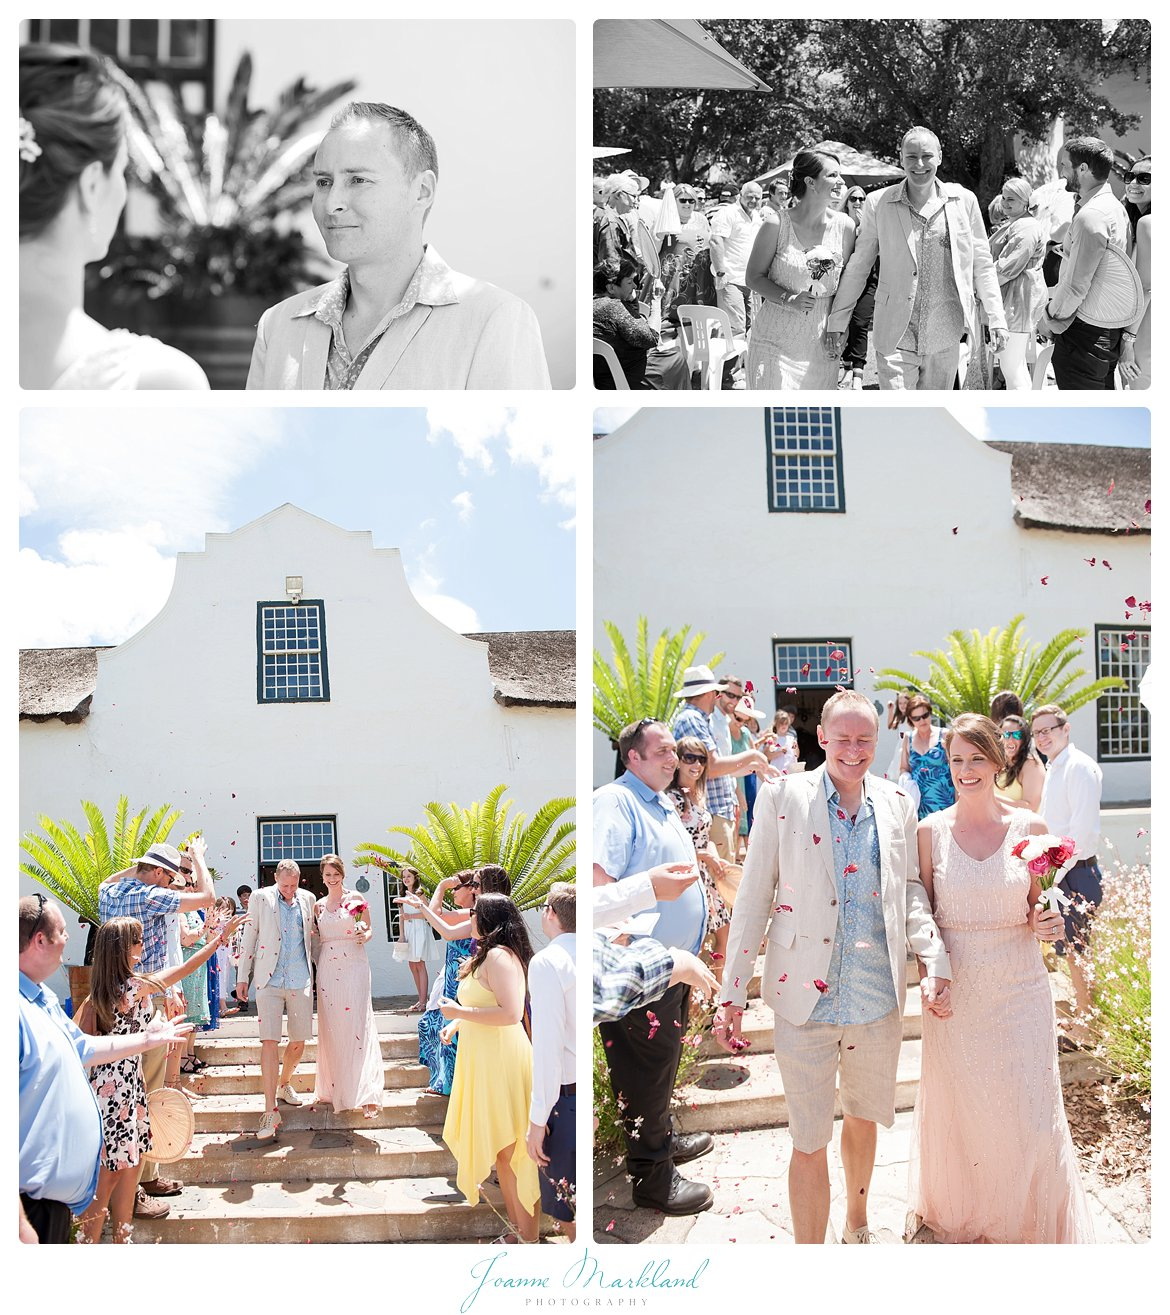 Grootepost-wedding-photography-joanne-markland-016